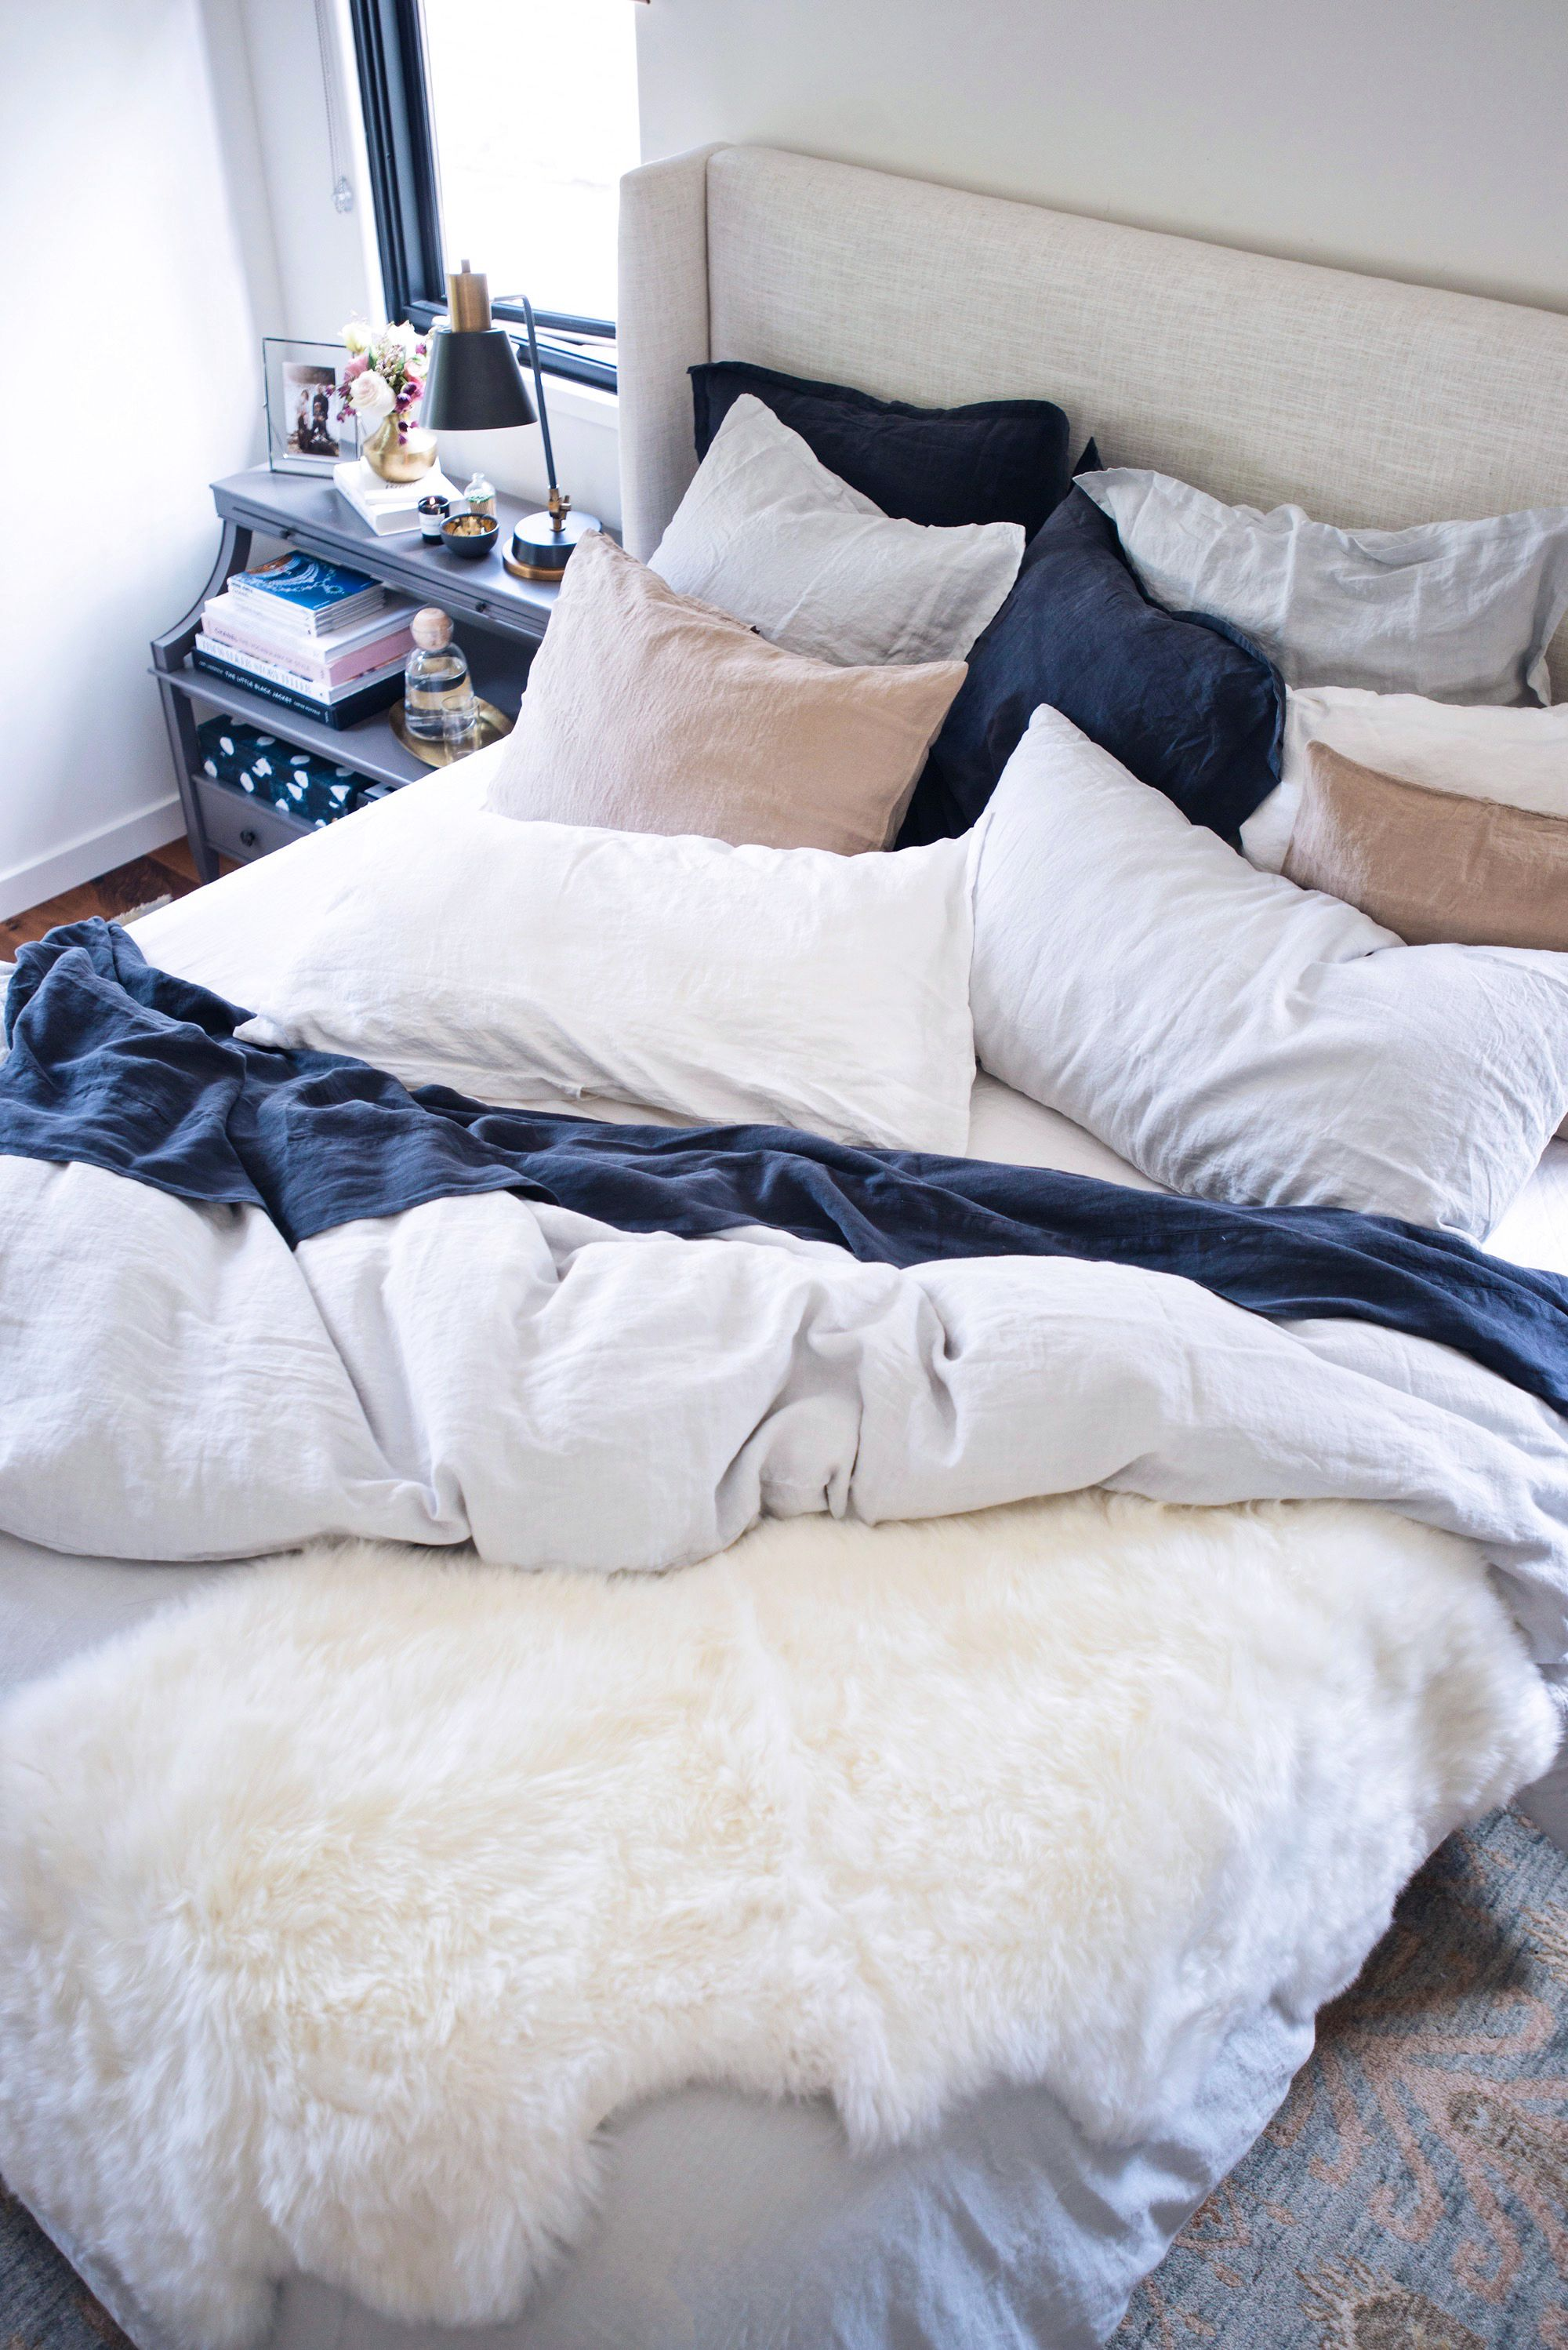 The Linen Bedding Of My Dreams With Images Bed Linens Luxury